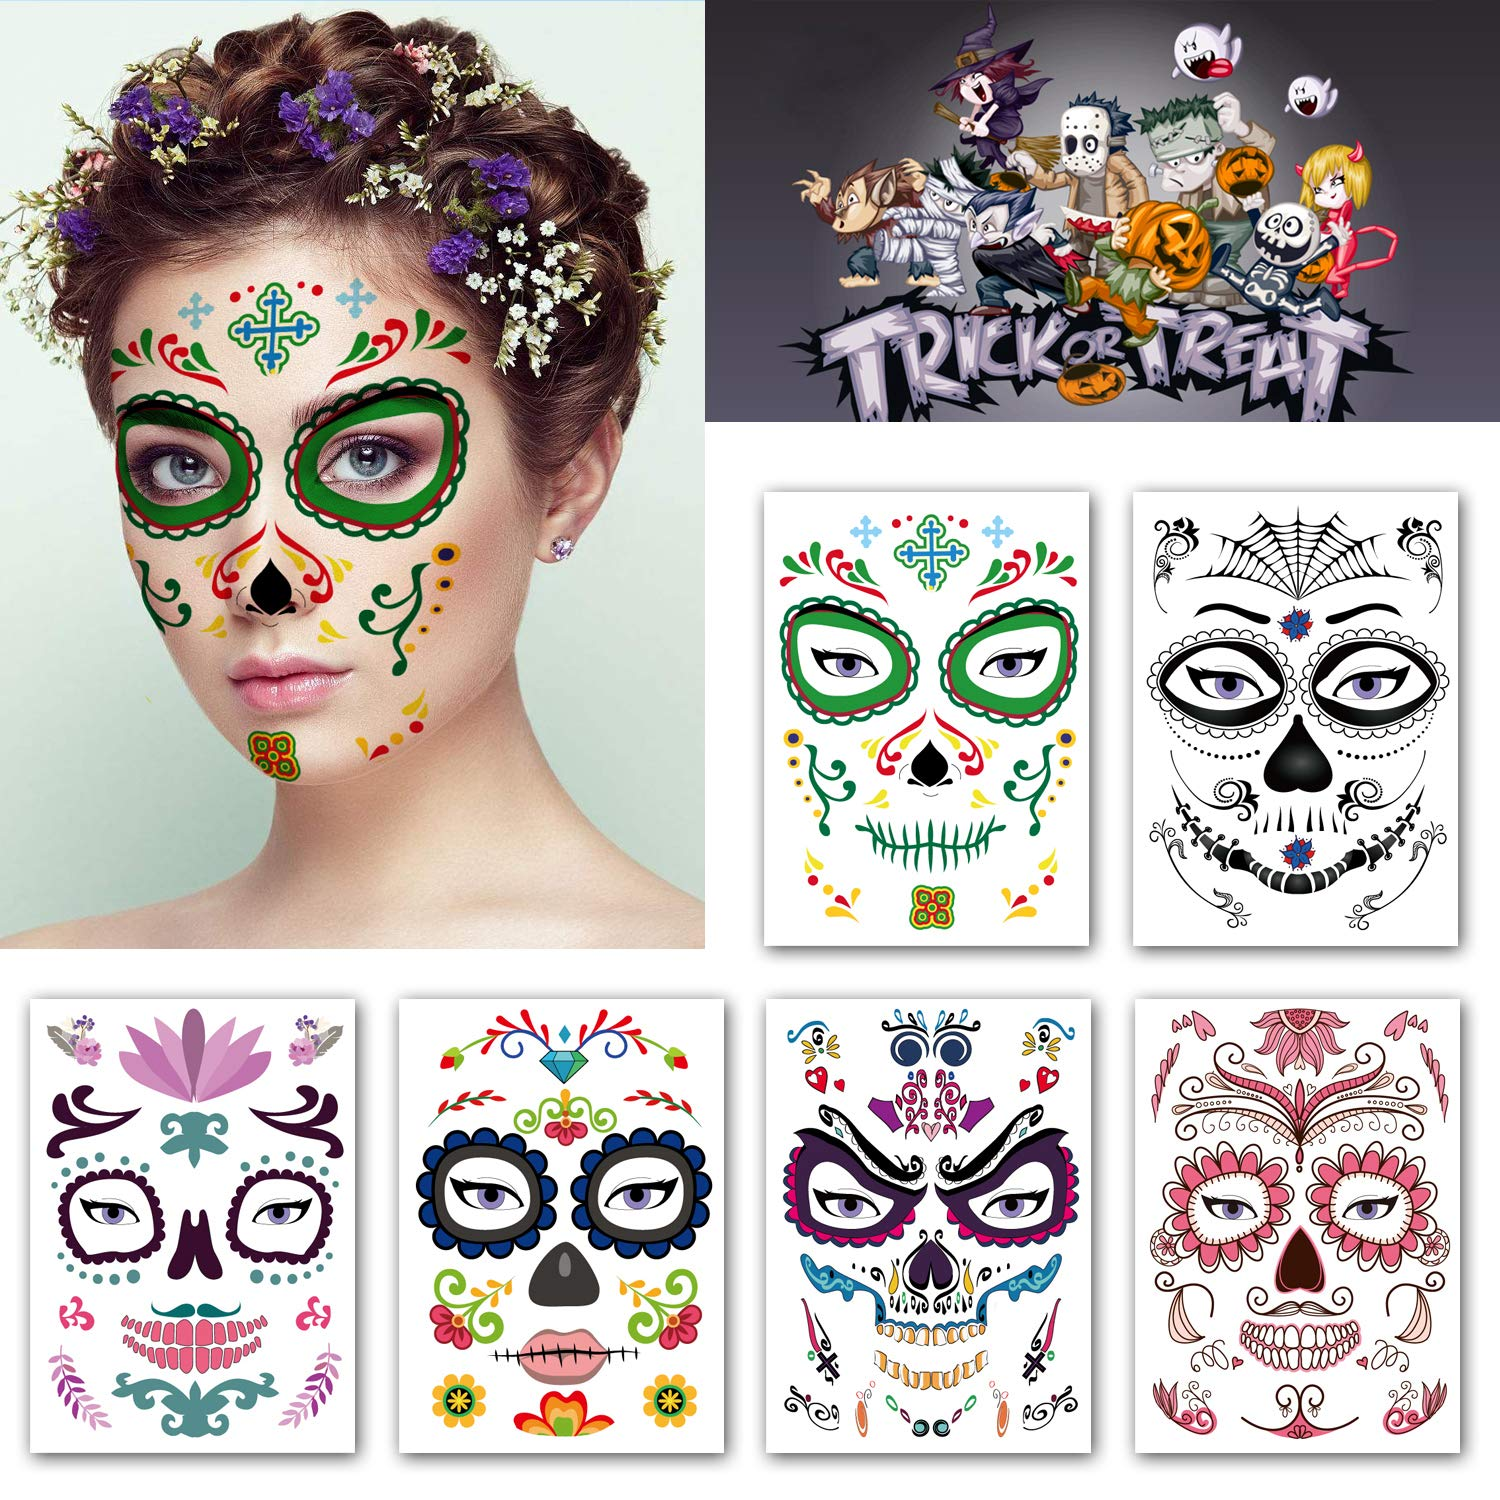 Kotbs 6 Sheets Temporary Face Tattoo Kit Halloween Temporary Tattoos Floral Day of the Dead Sugar Skull Tattoo Sticker for Women Men Fake Tattoo